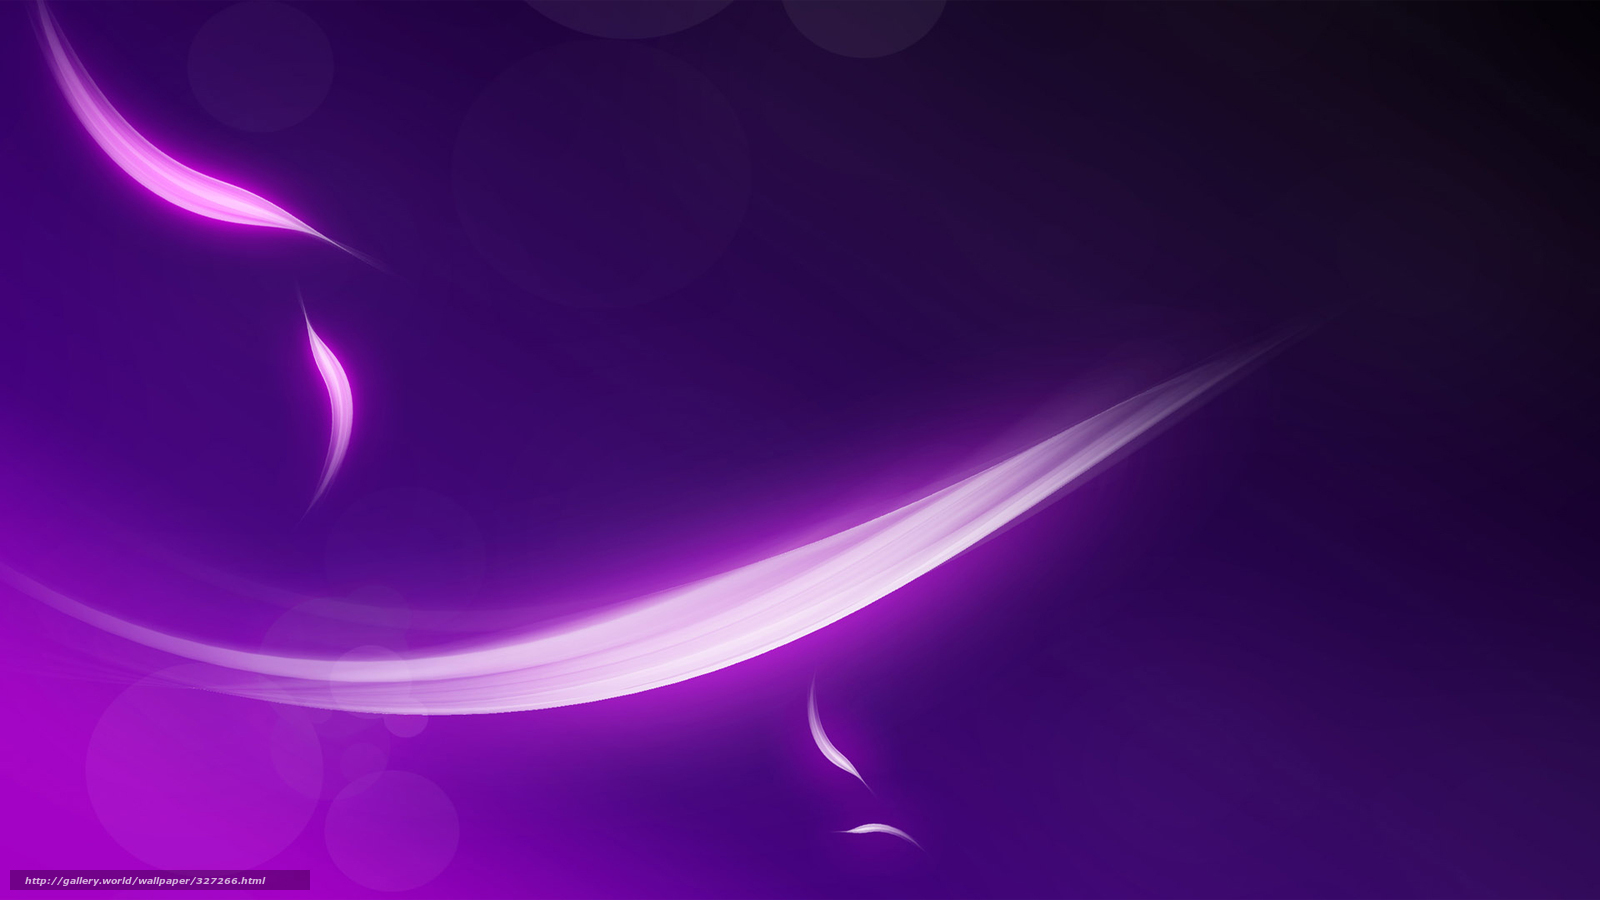 Simple background design purple